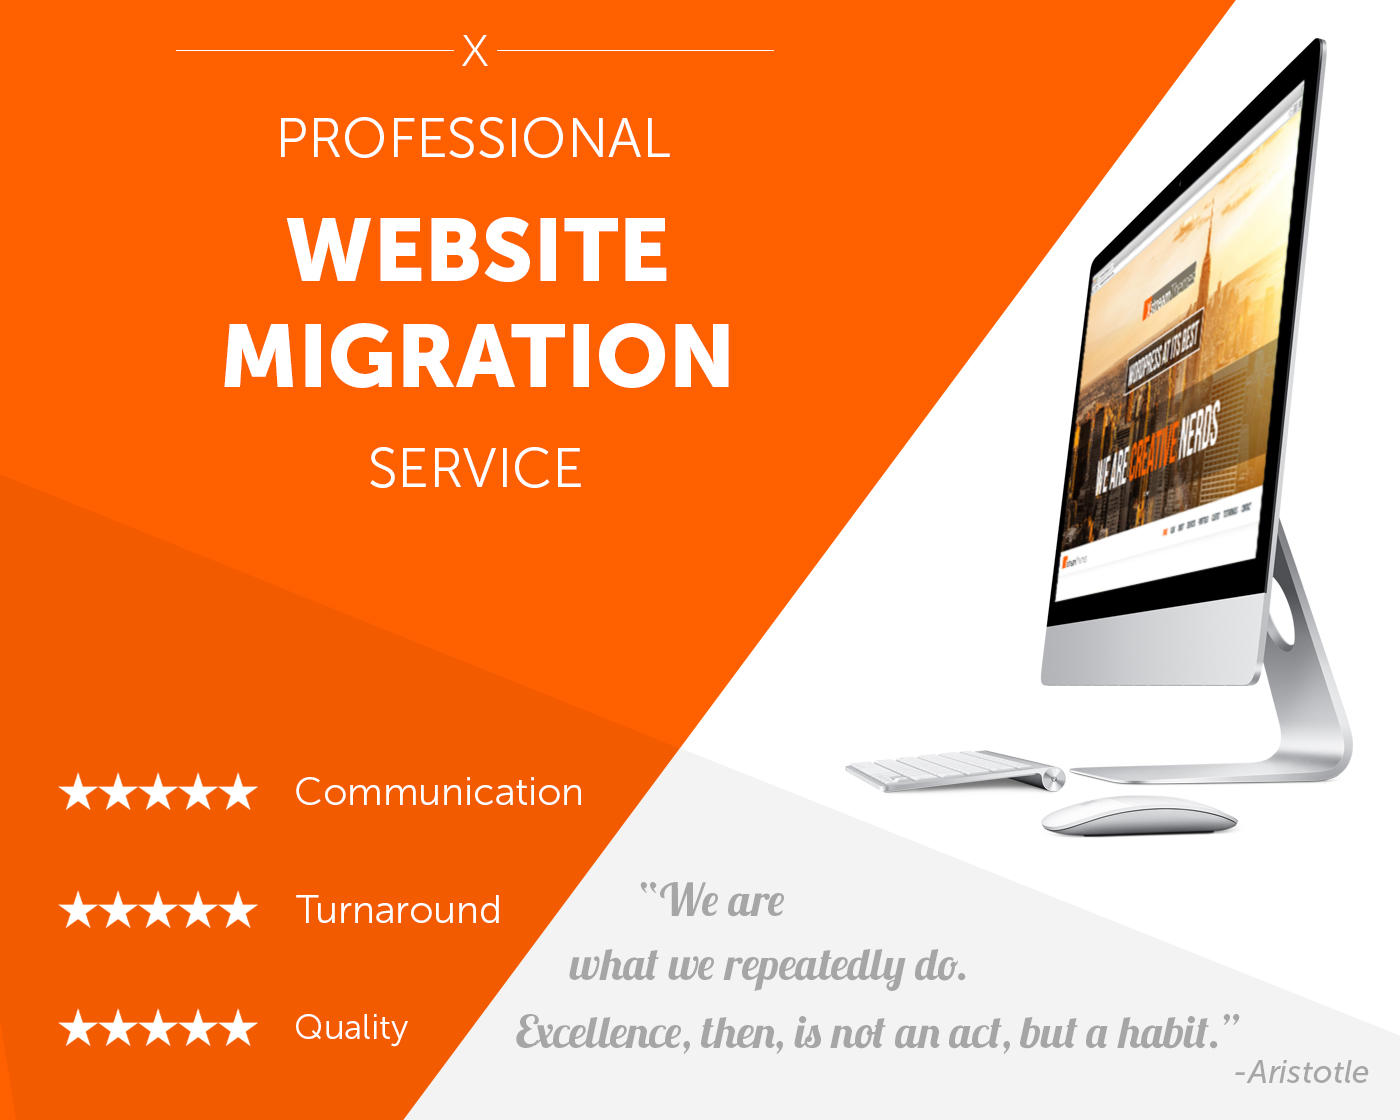 WordPress Website Migration Service by xstreamthemes - 63240